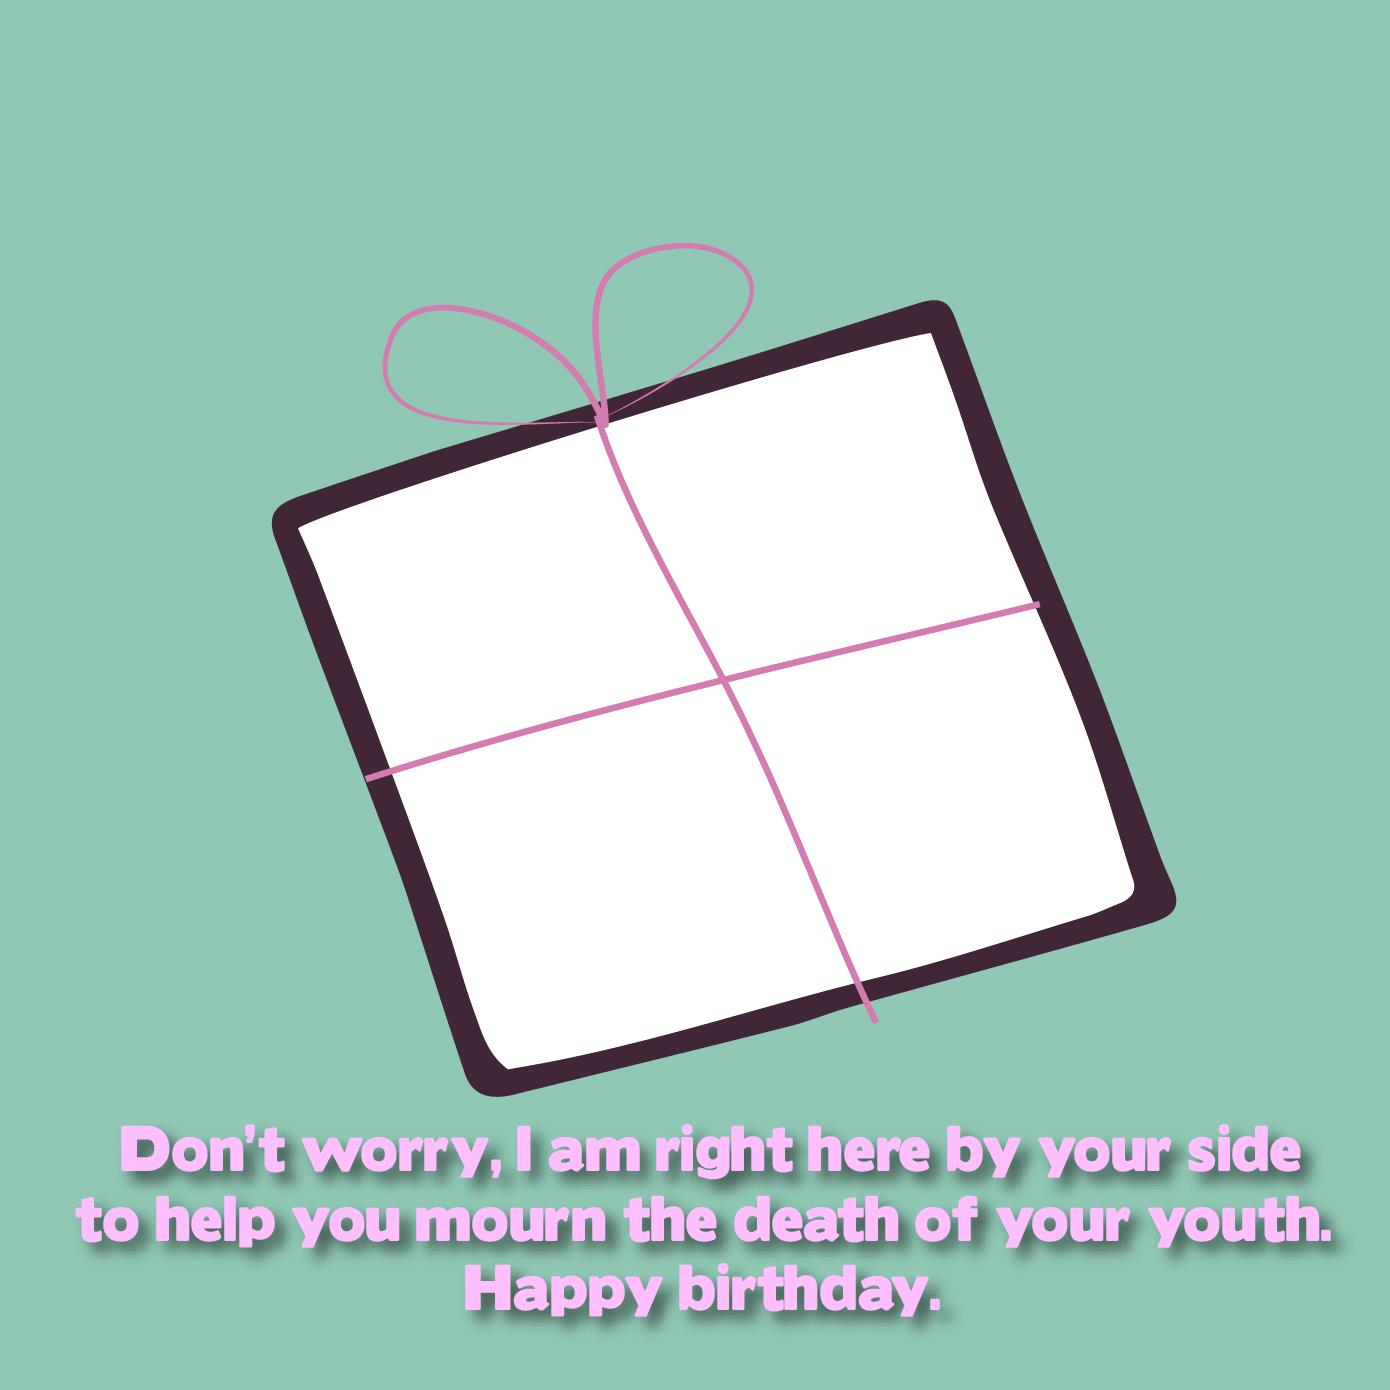 humorous-birthday-wishes-05